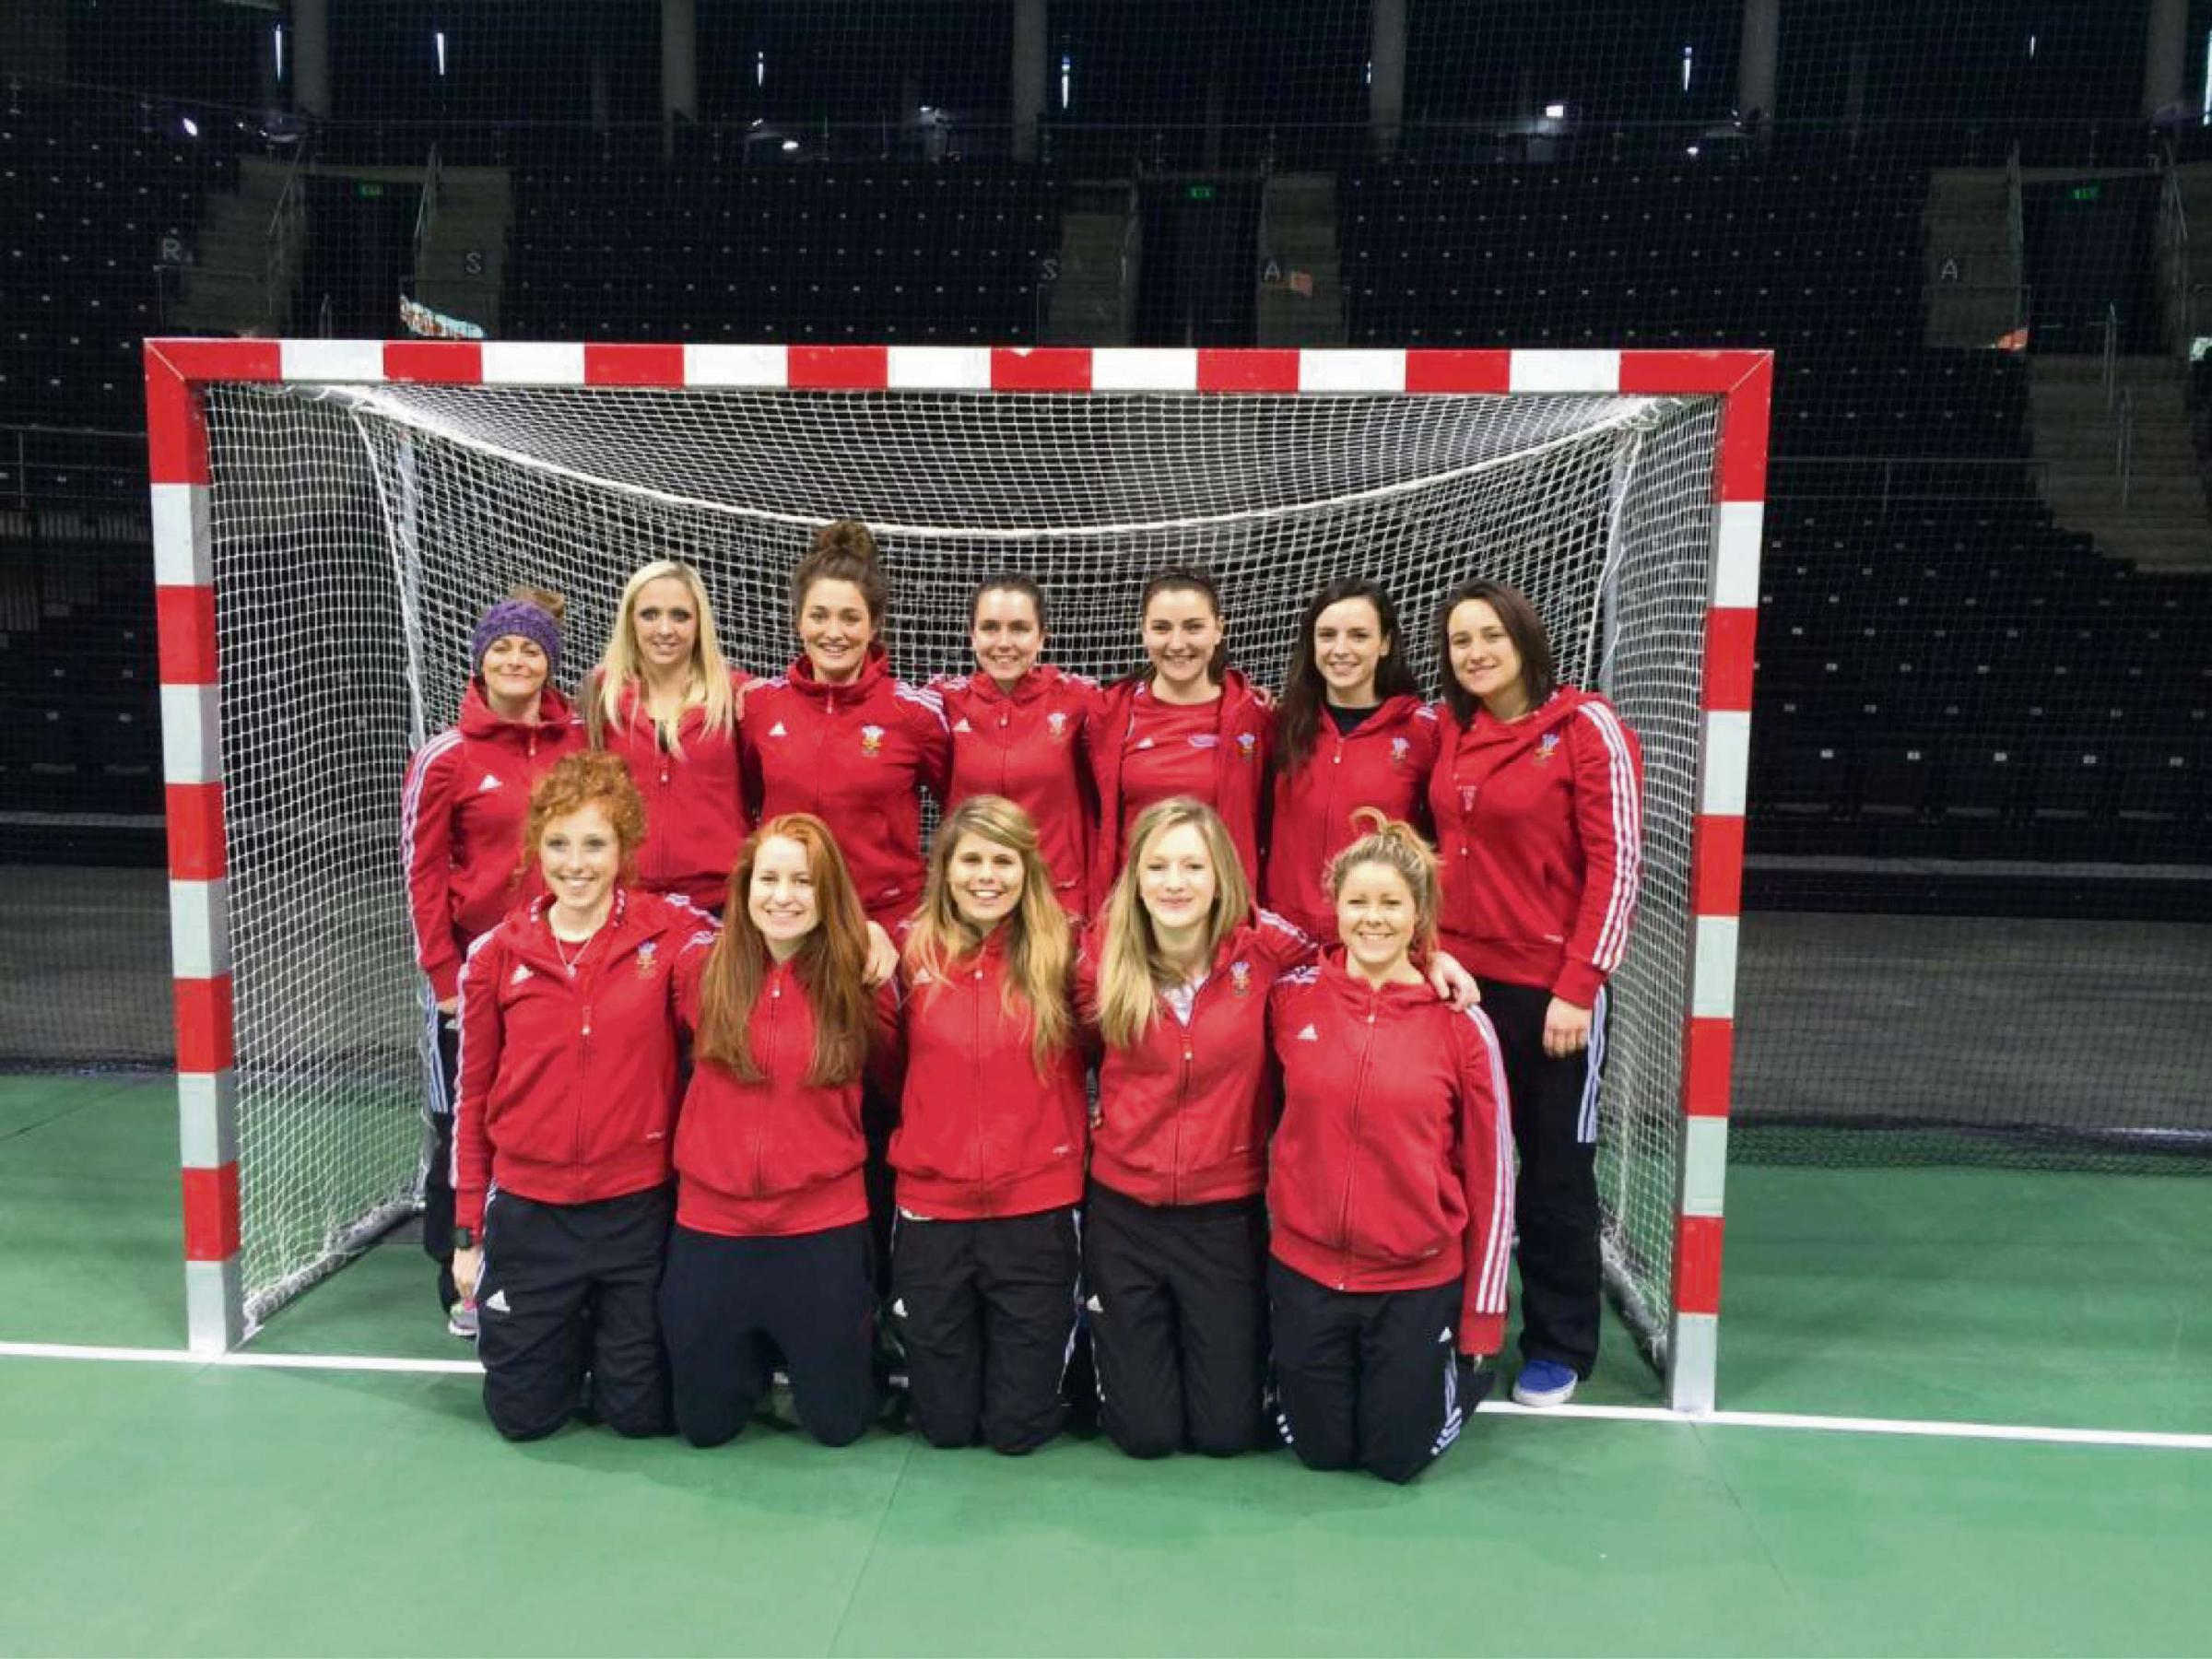 FUNDRAISING: Wales women's hockey team have high hopes for Glasgow 2014